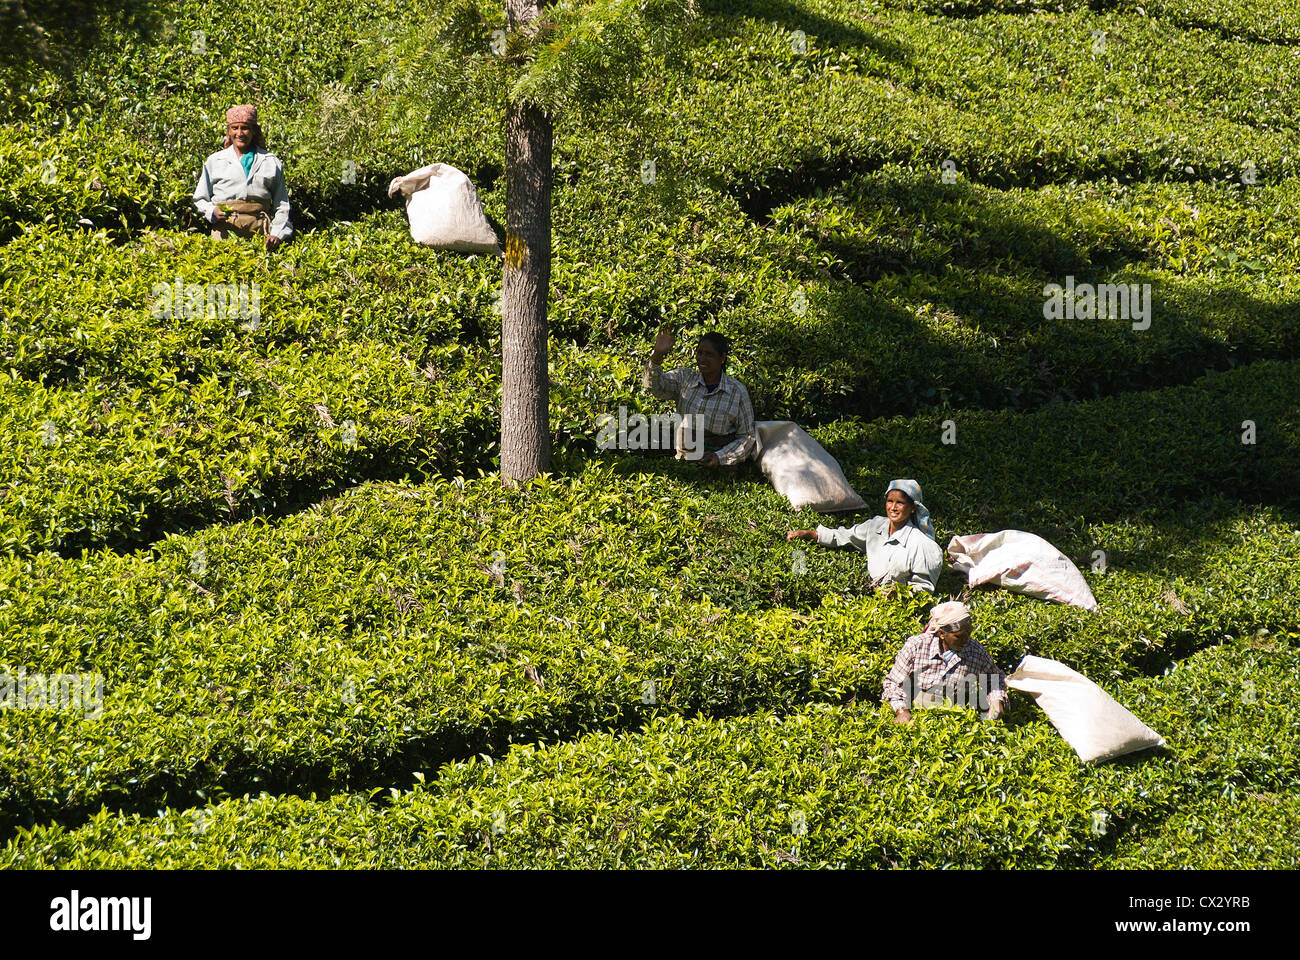 Elk201-5452 India, Tamil Nadu, Udhagamandalam (Ooty), tea plantation, workers picking tea leaves - Stock Image